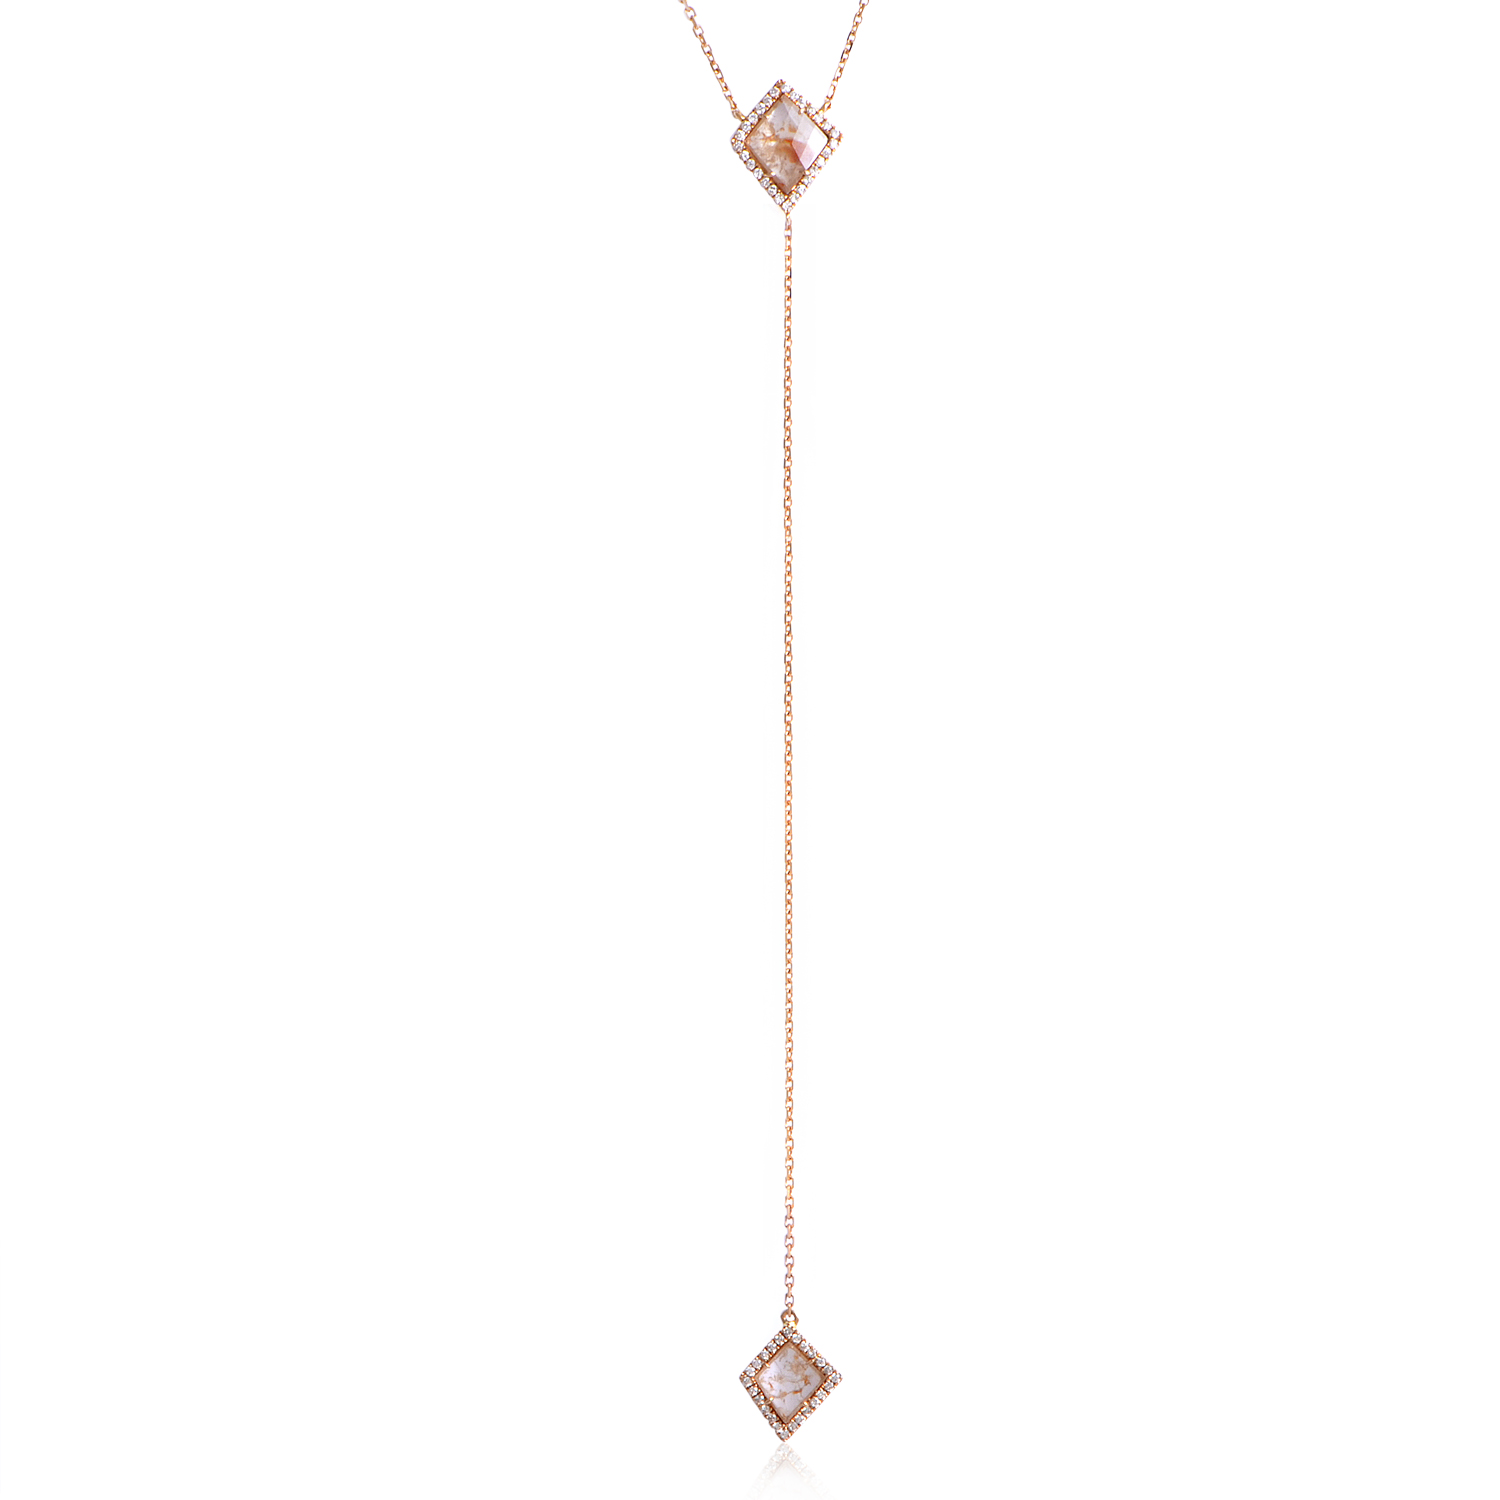 Women's 18K Rose Gold White & Gray Diamond Lariat Necklace KE569NVRZ